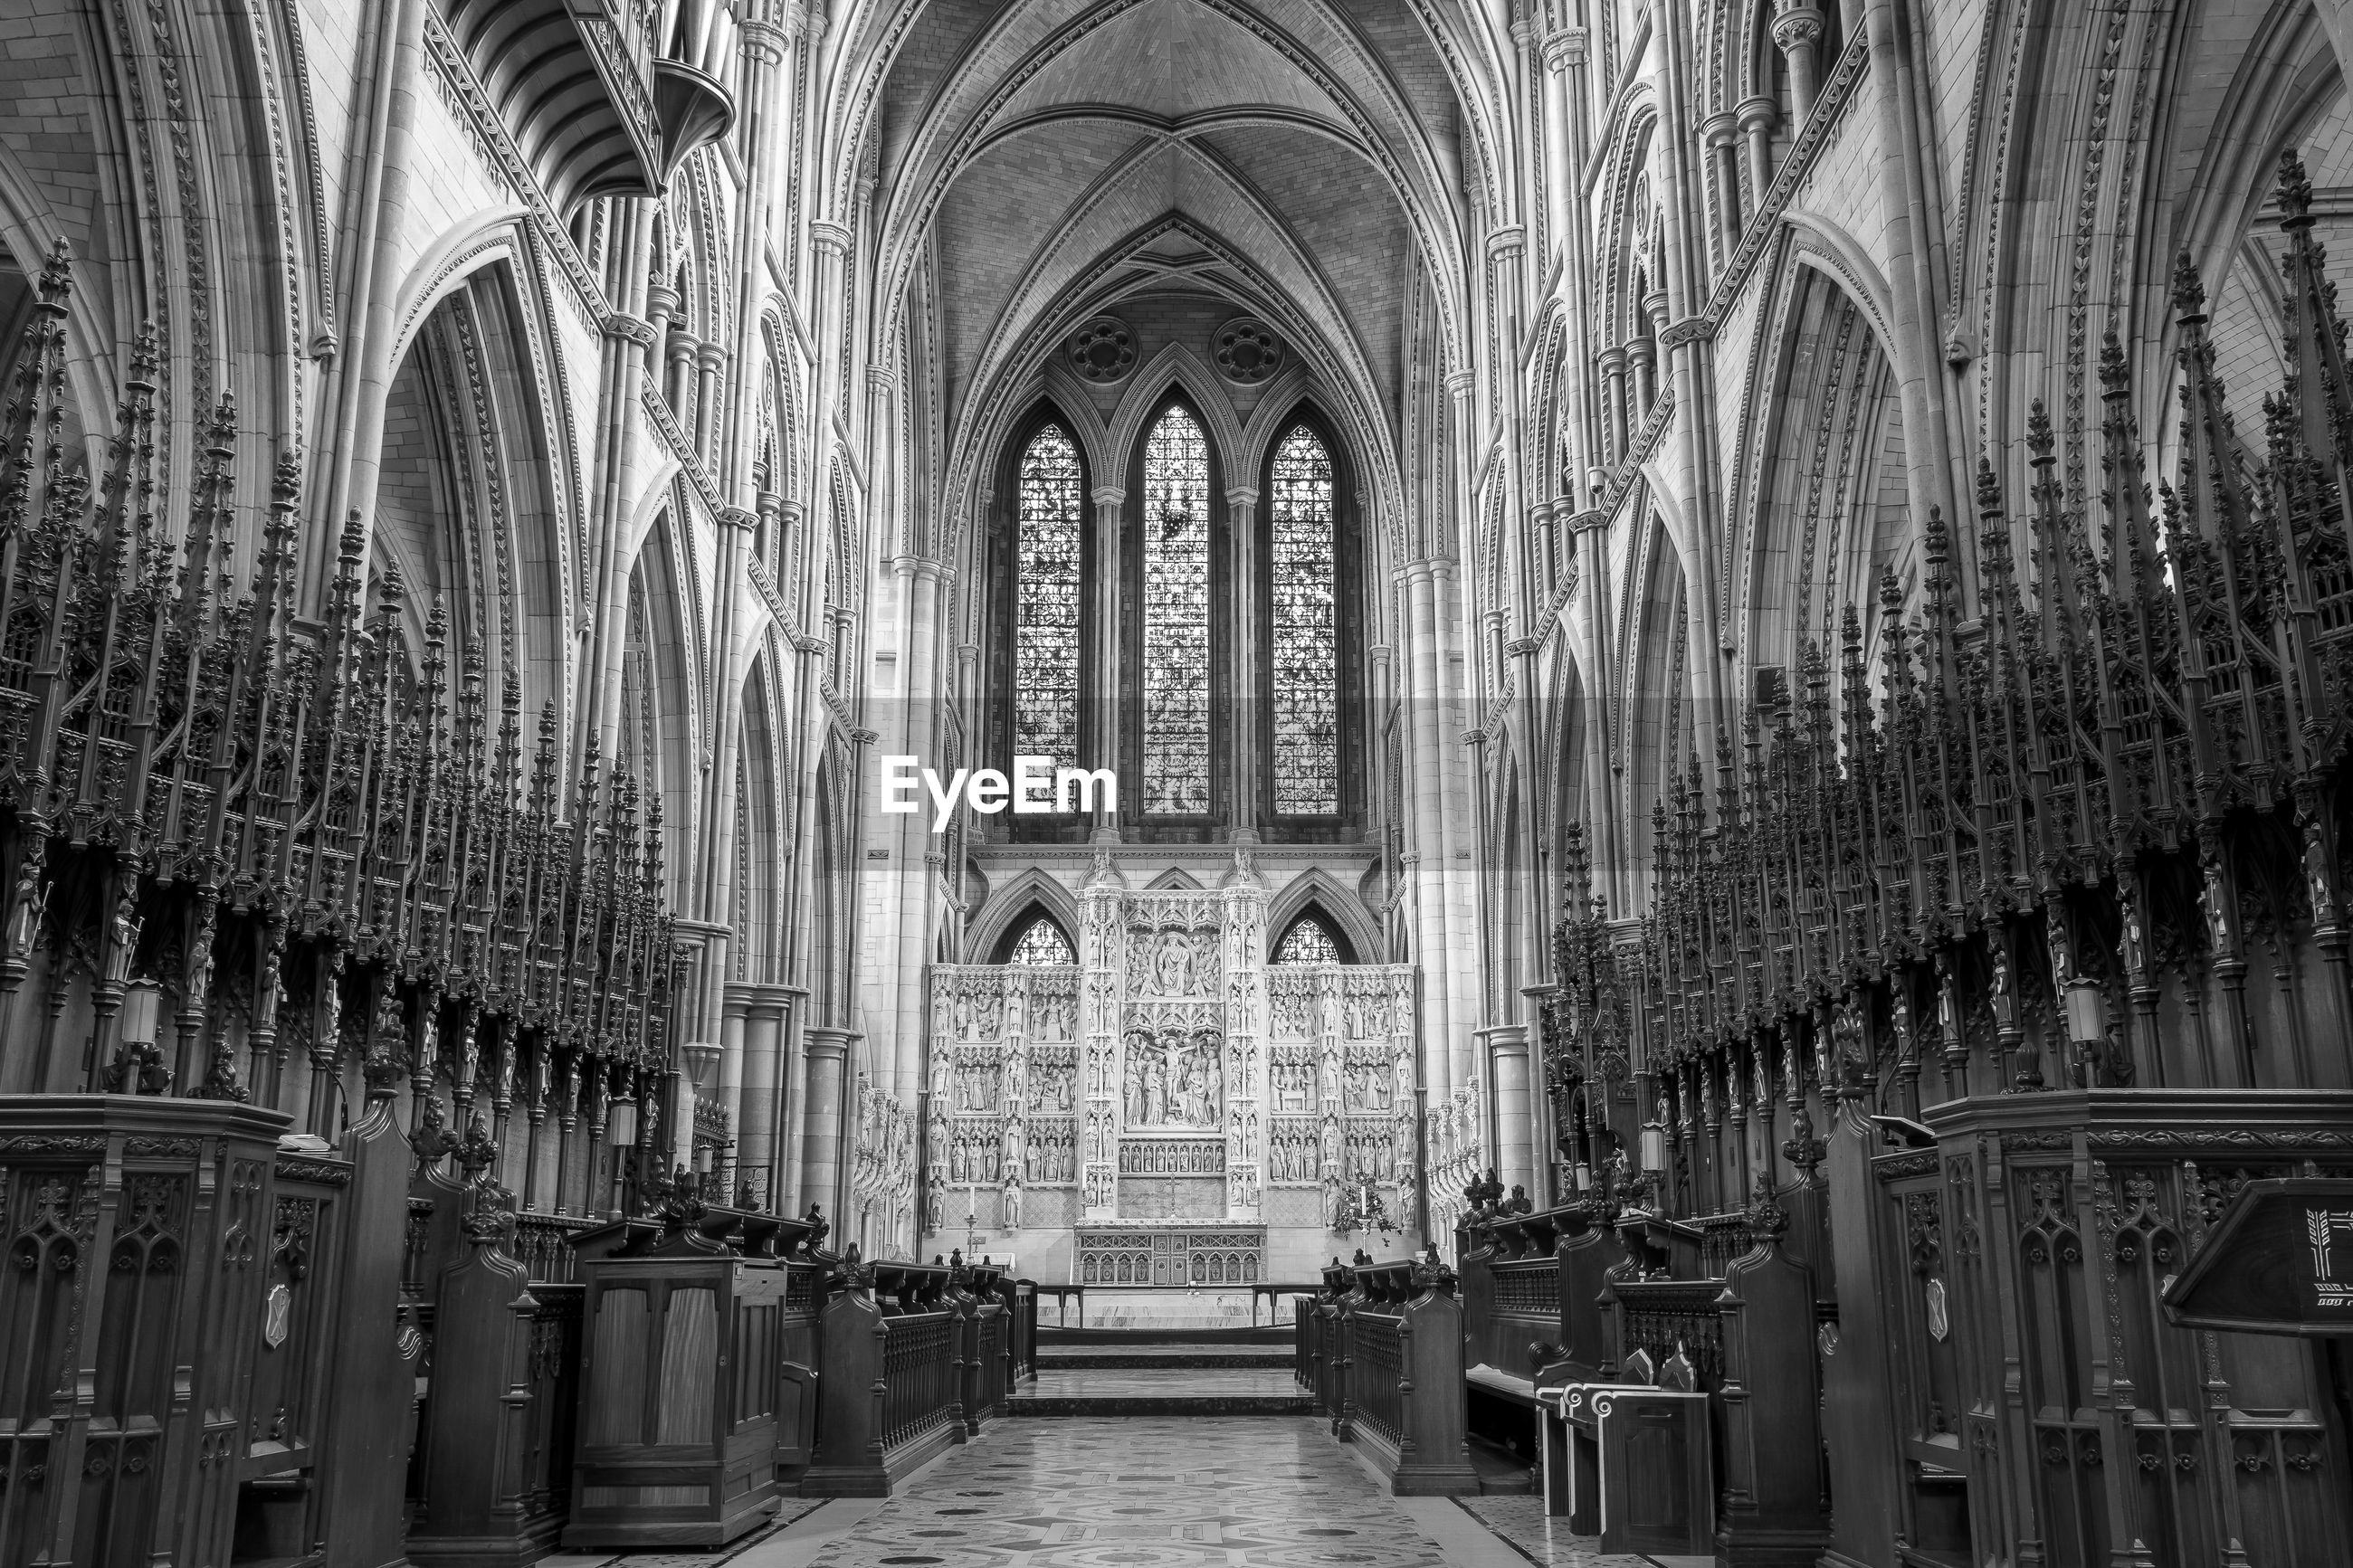 Black and white photo of the inside of truro cathedral in cornwall